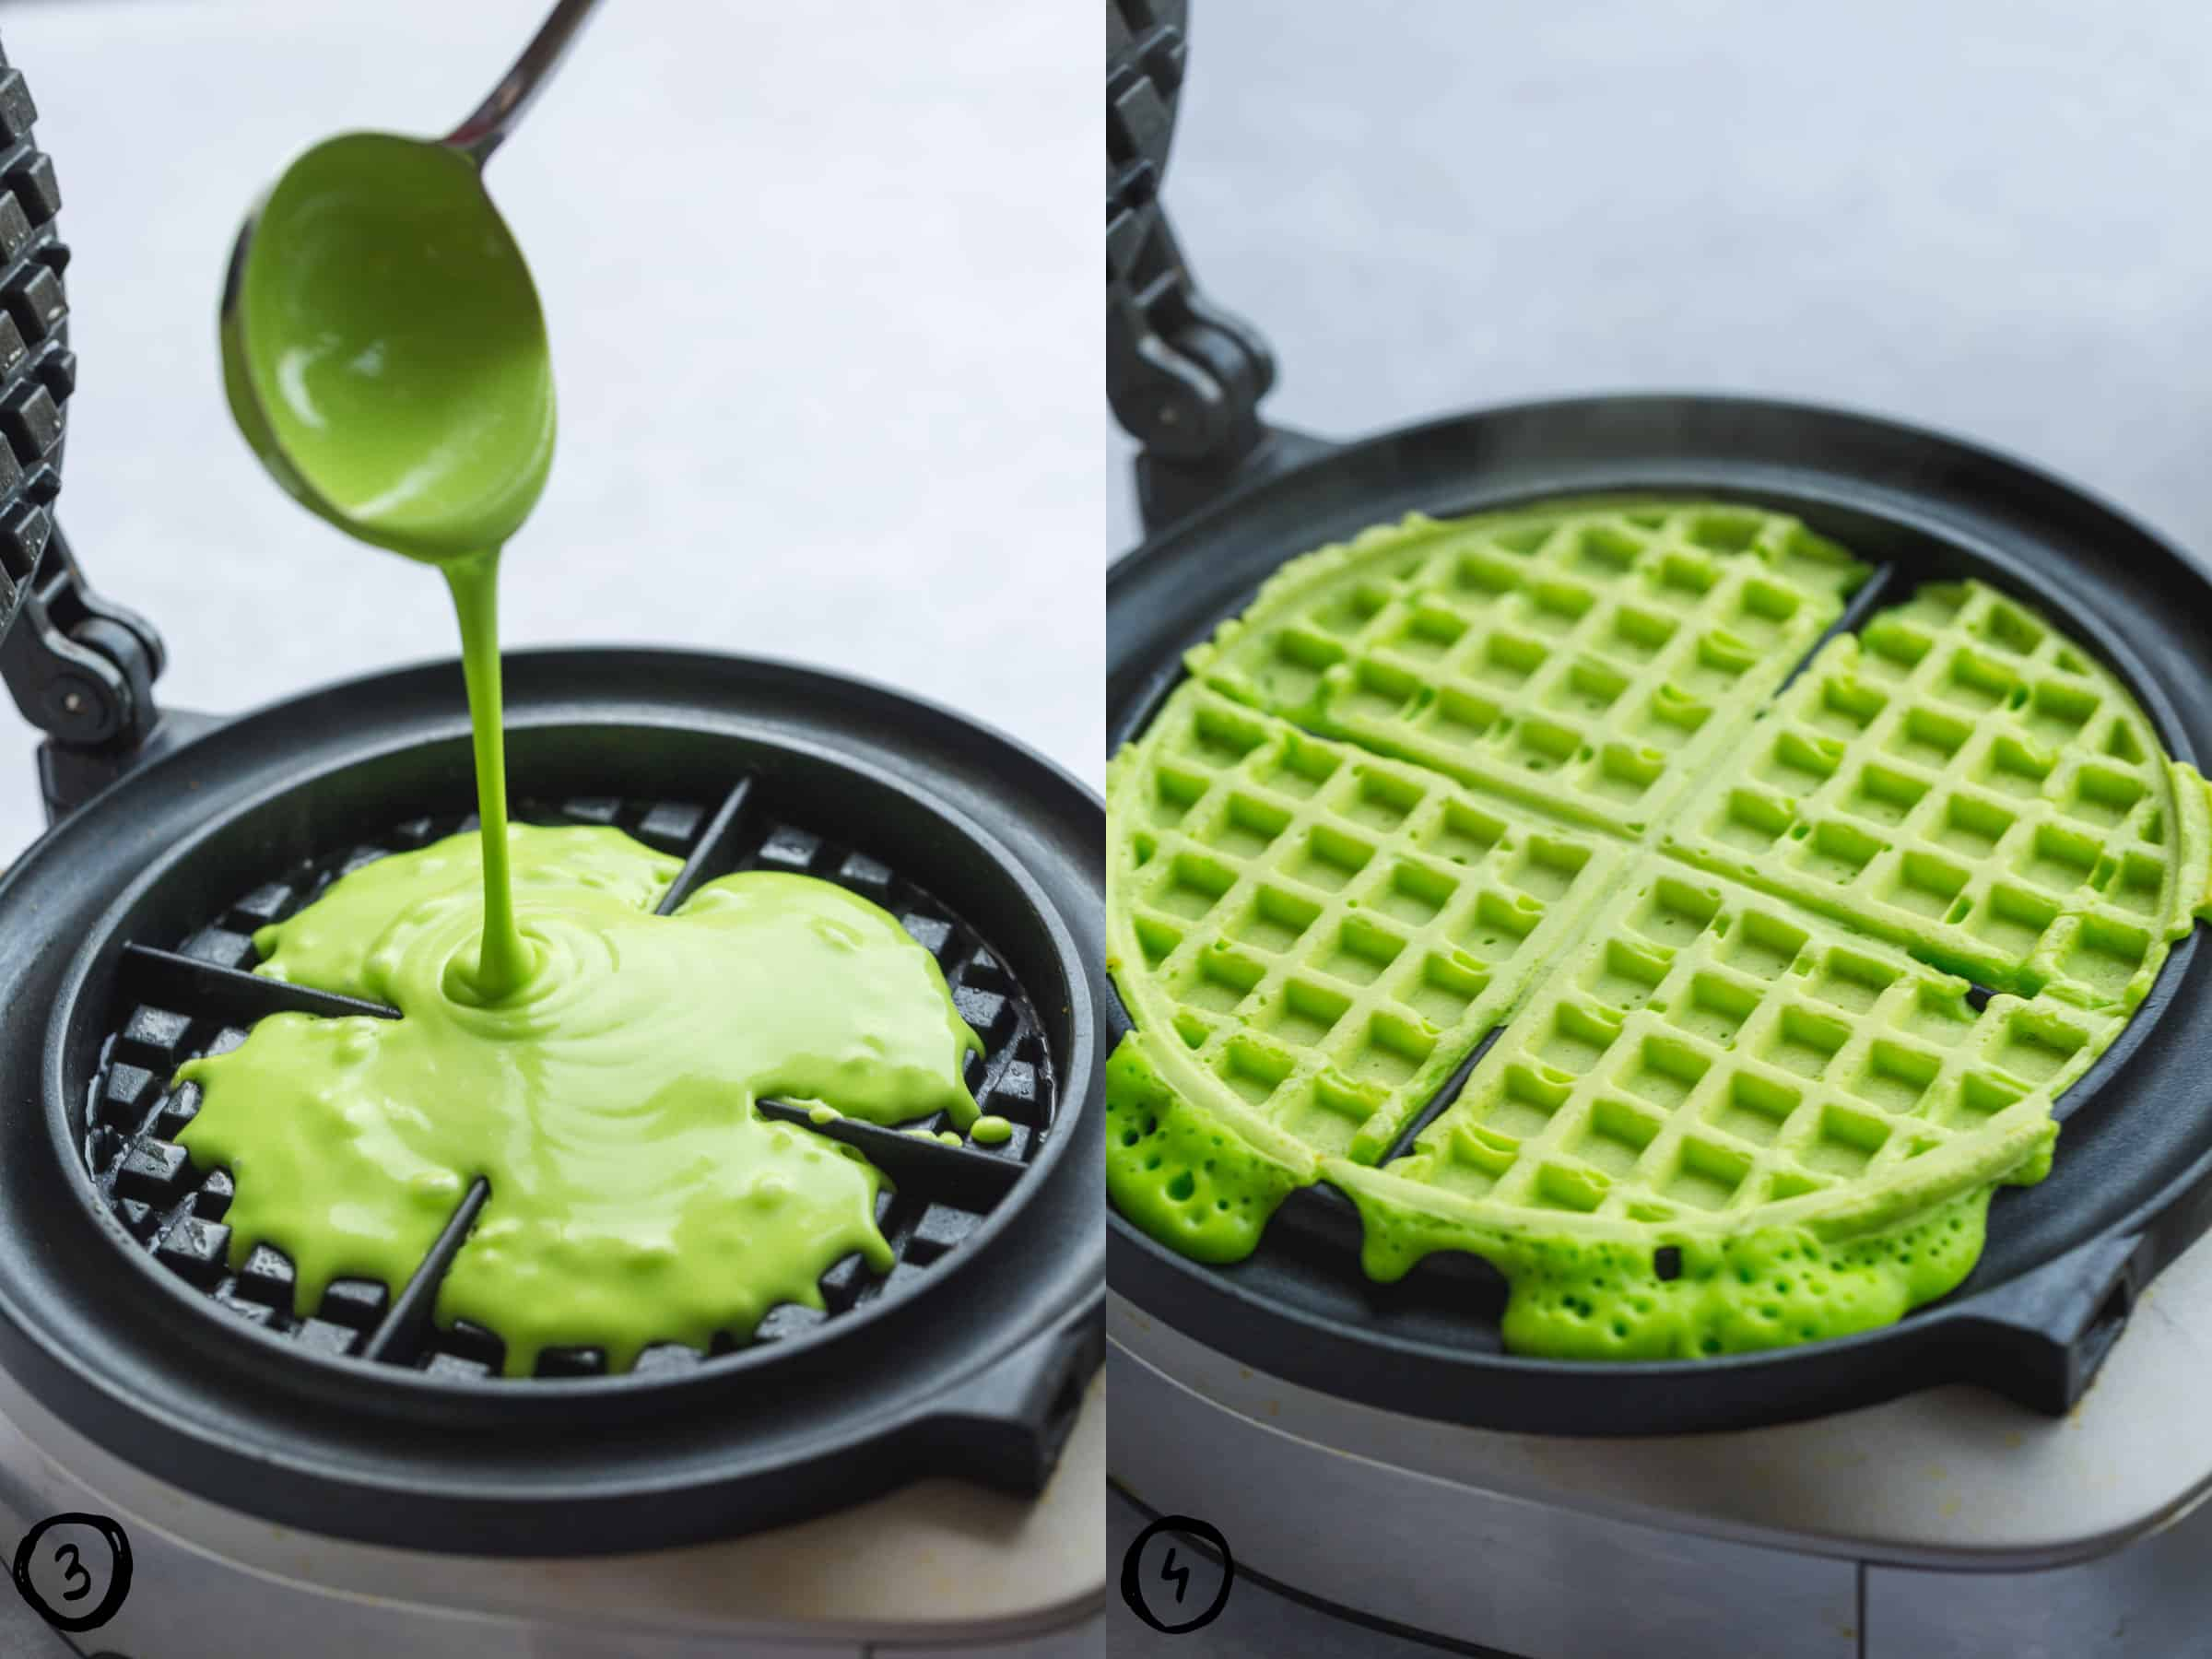 Steps how to make the green christmas tree waffles in a waffle maker